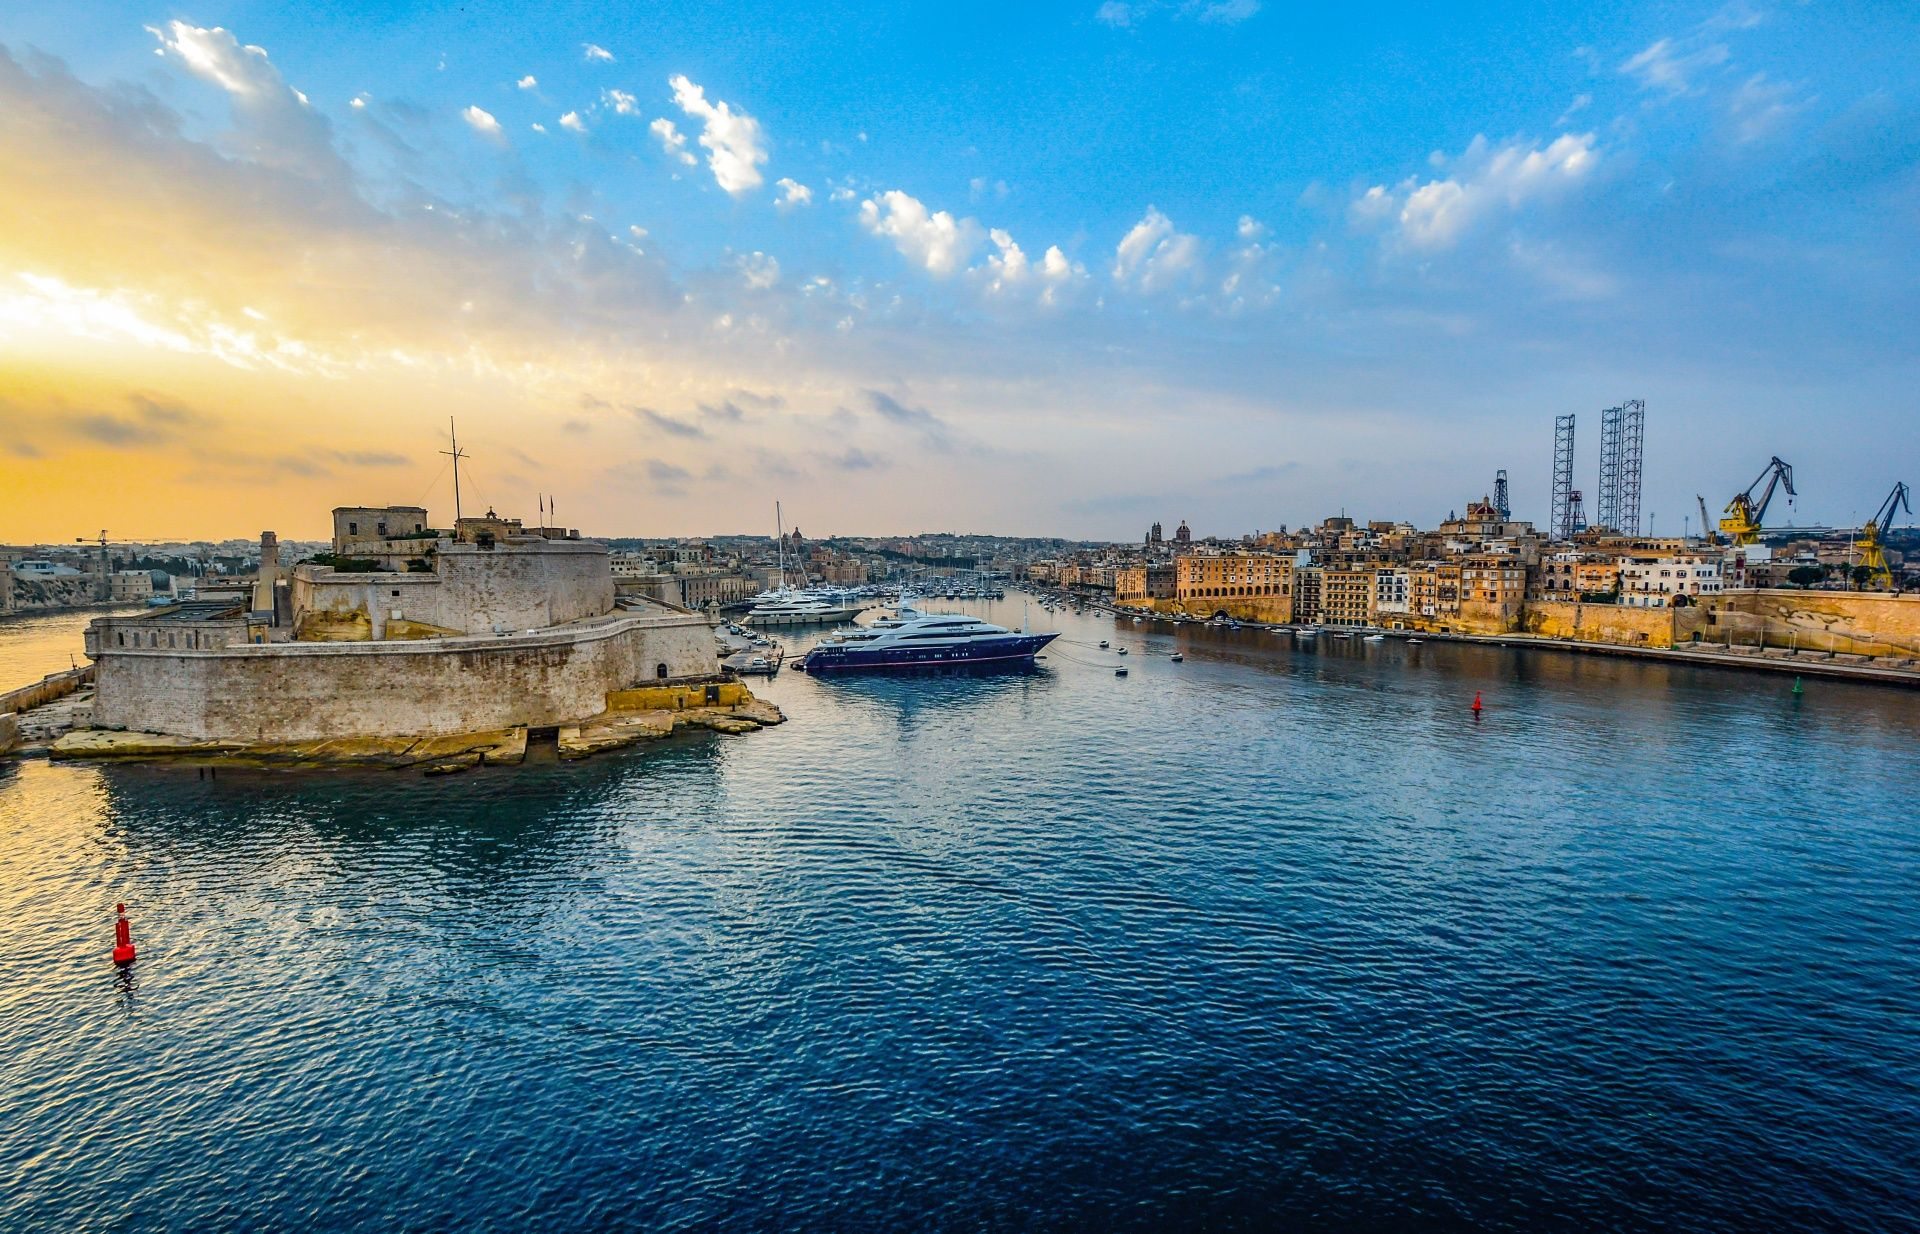 Ships in malta harbor